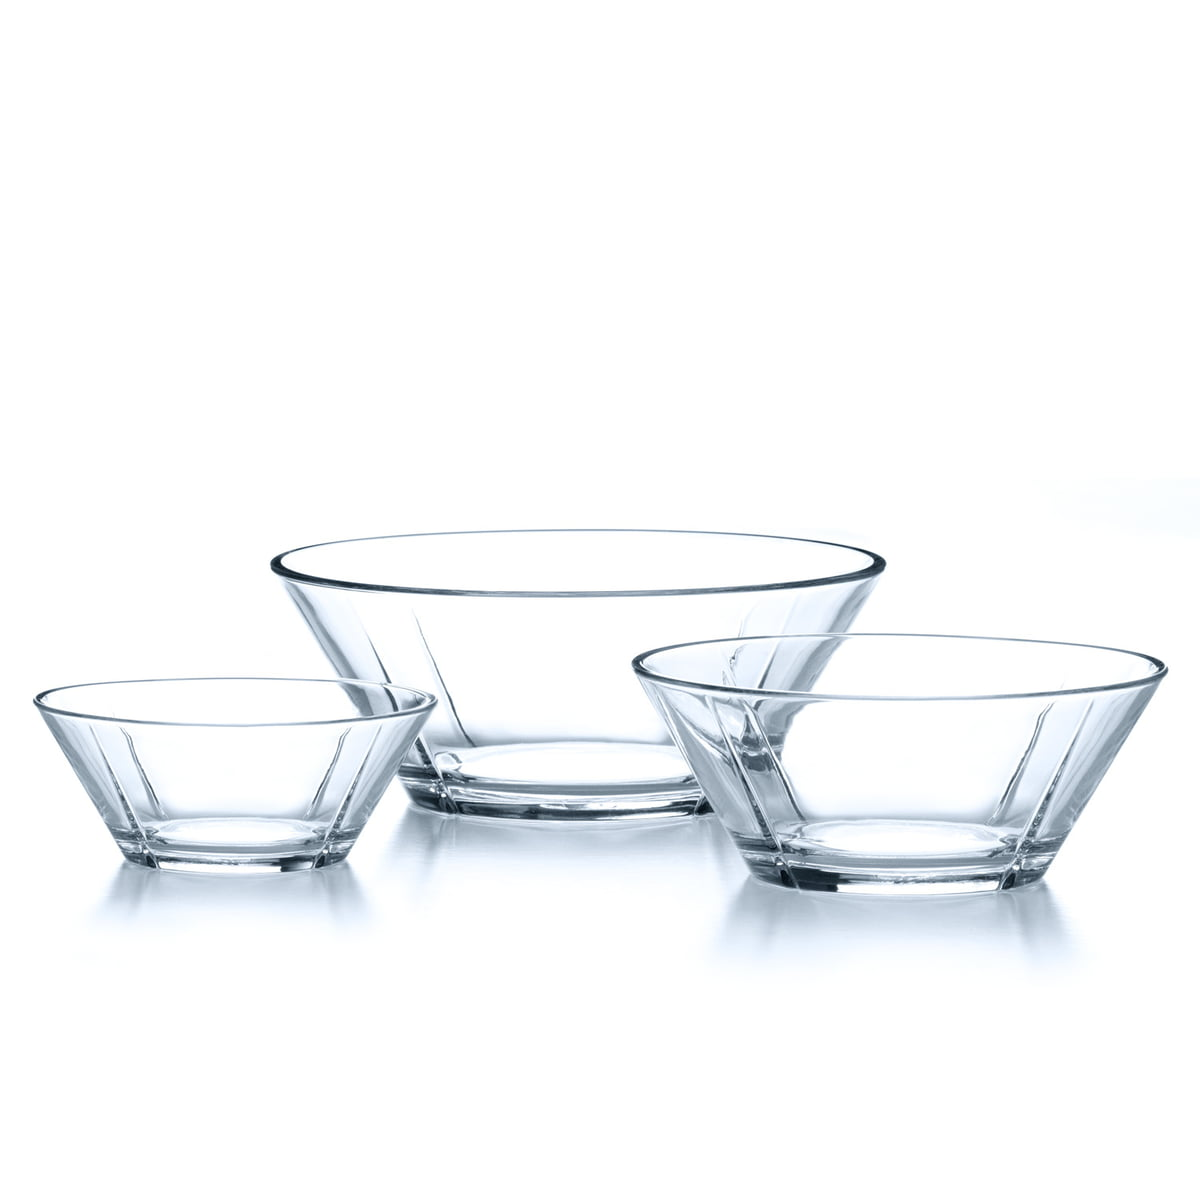 Grand Cru Glasschalen-Set, 3 tlg.